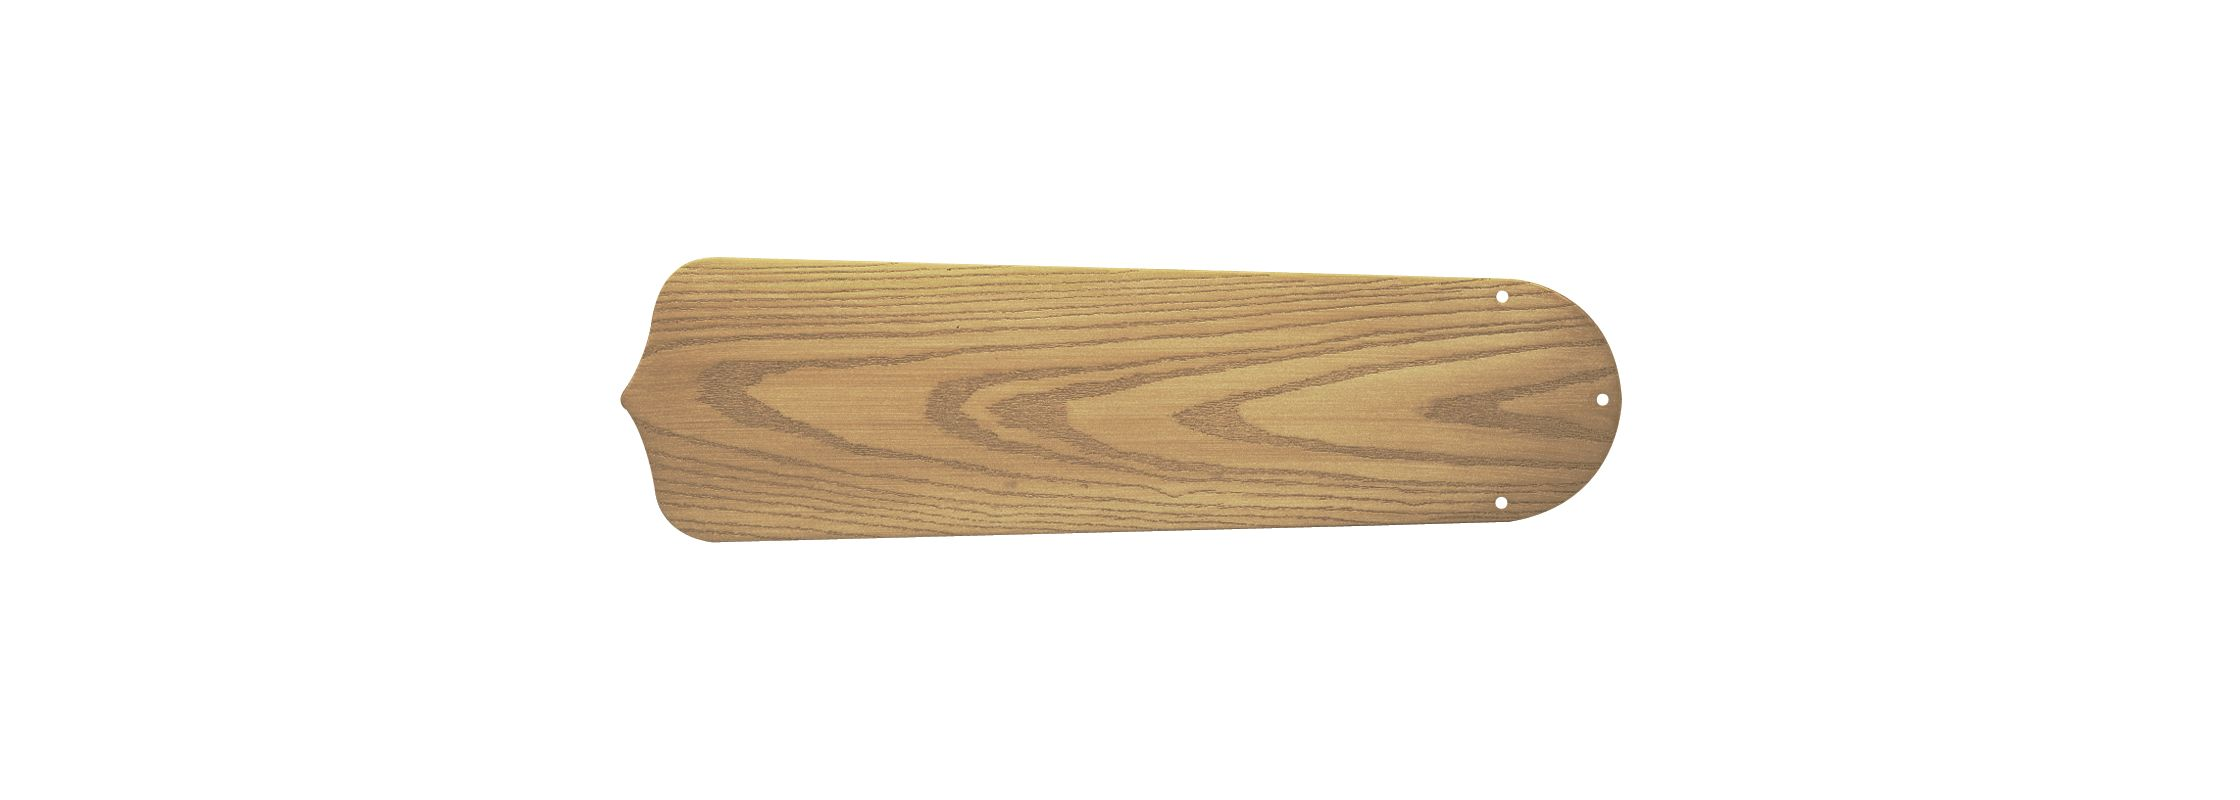 "Craftmade B552S-O 5 Blade Pack - 52"" Standard Blades Pickled Oak"